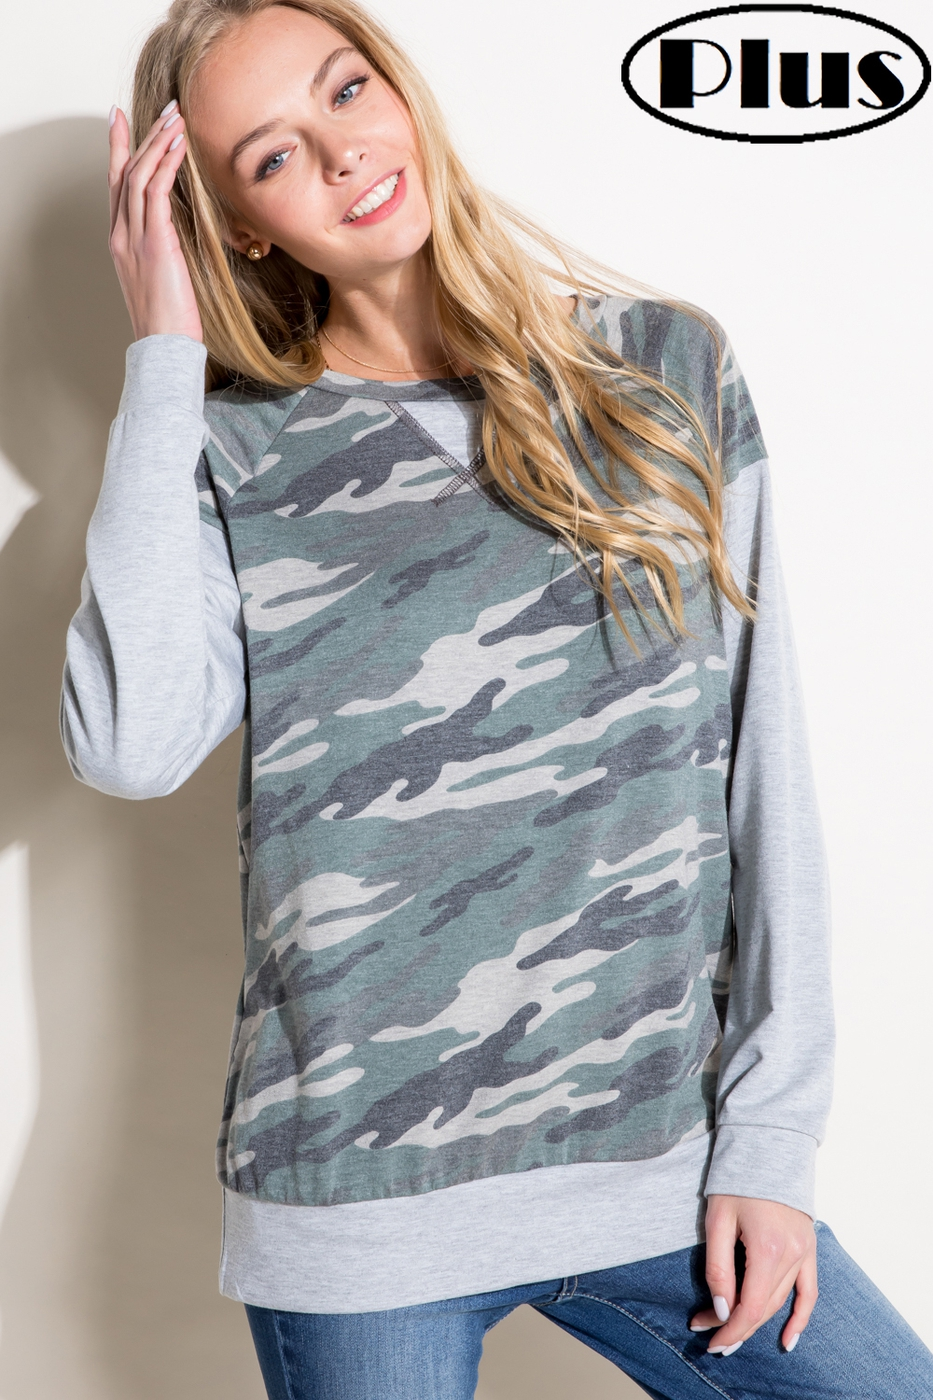 SOLID CAMOUFLAGE SWEATSHIRT PLUS TOP - orangeshine.com